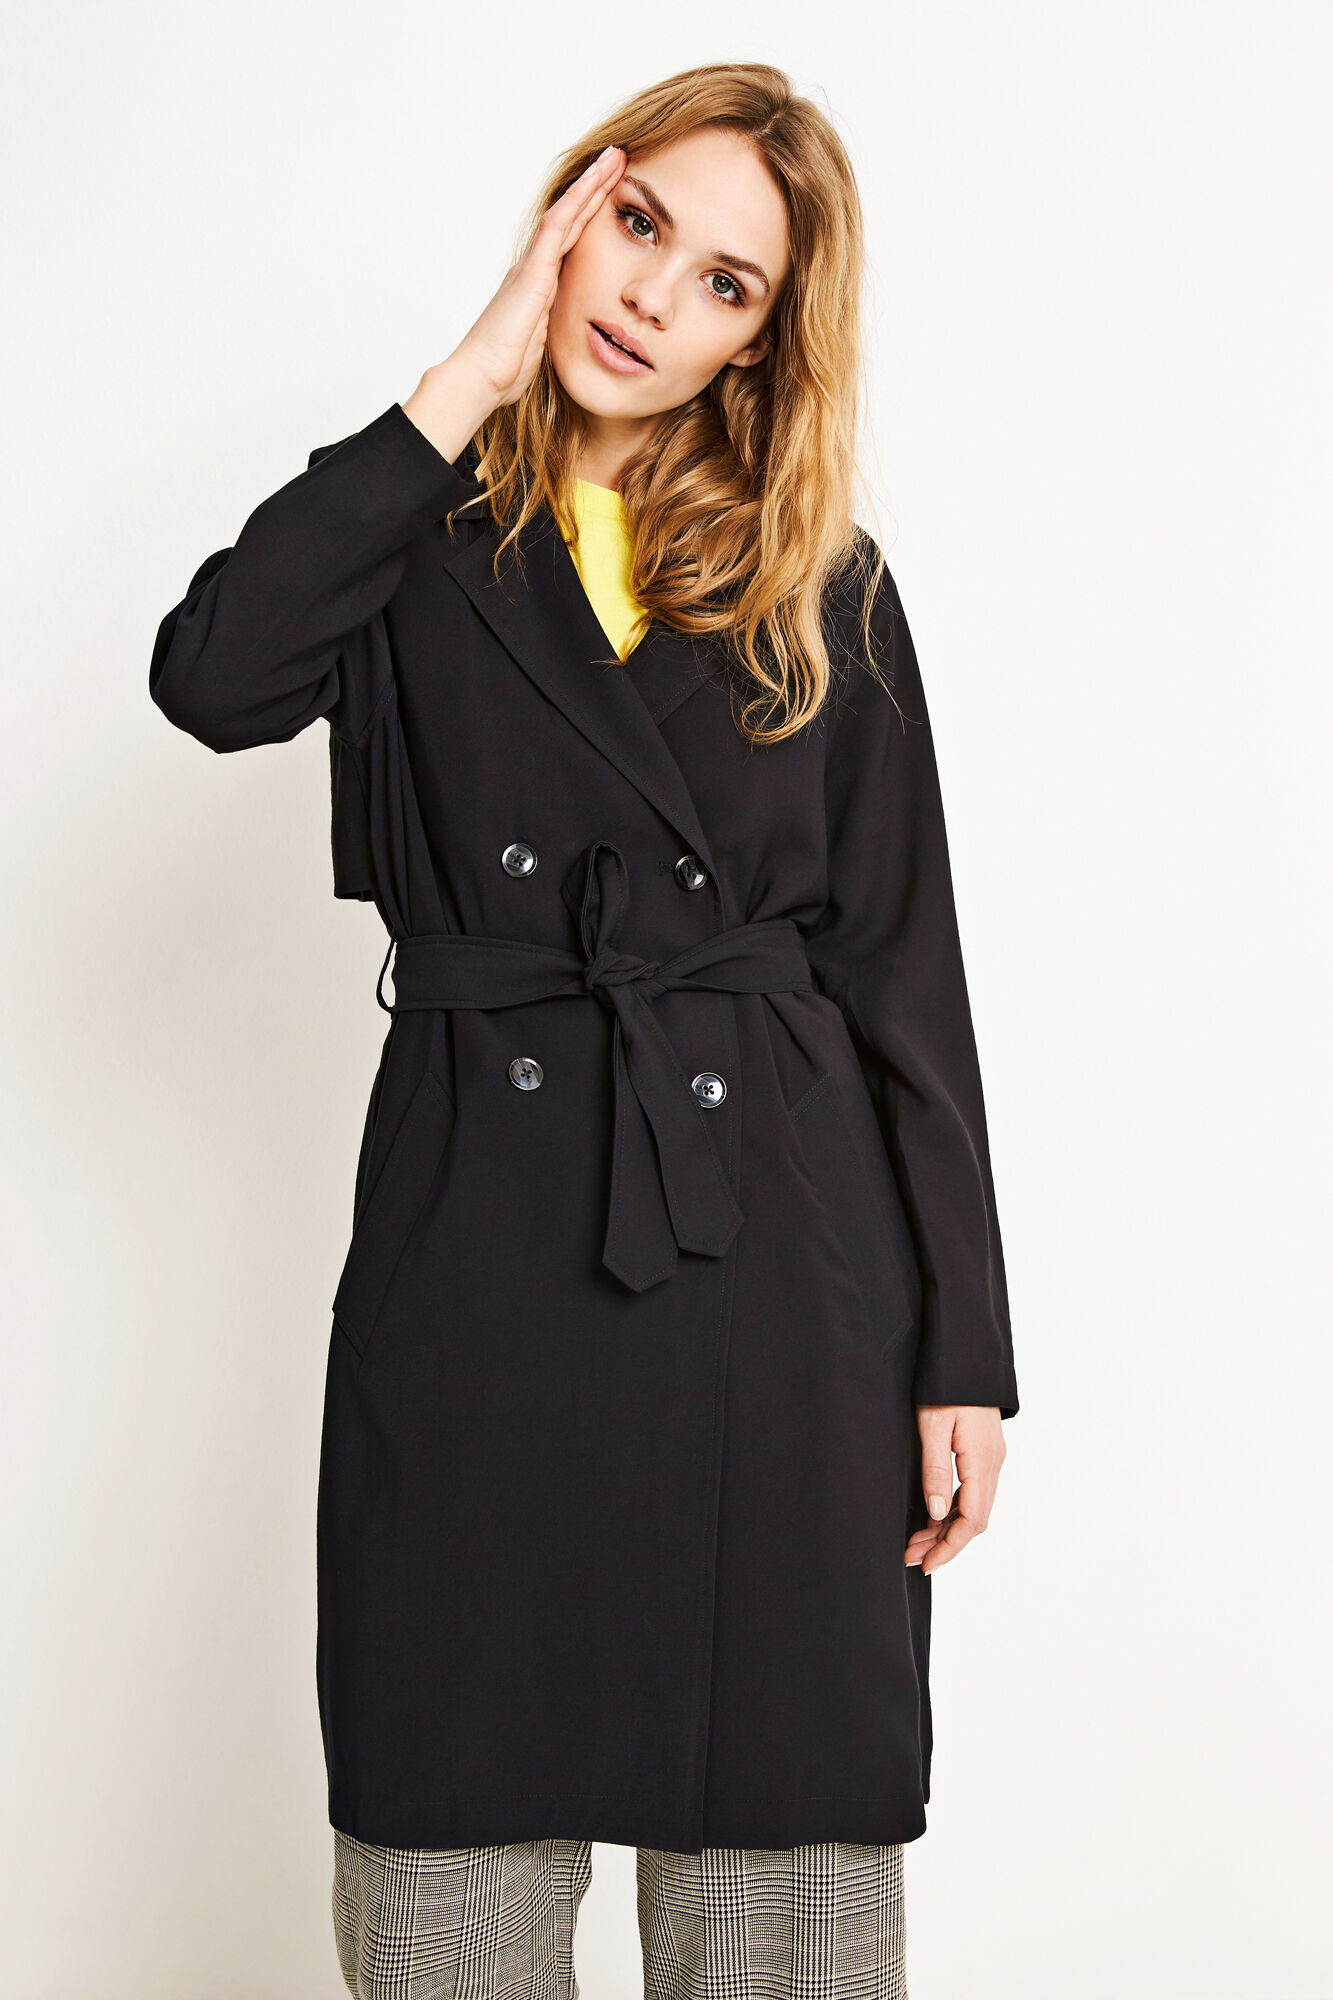 ENSWEET JACKET 6502, BLACK